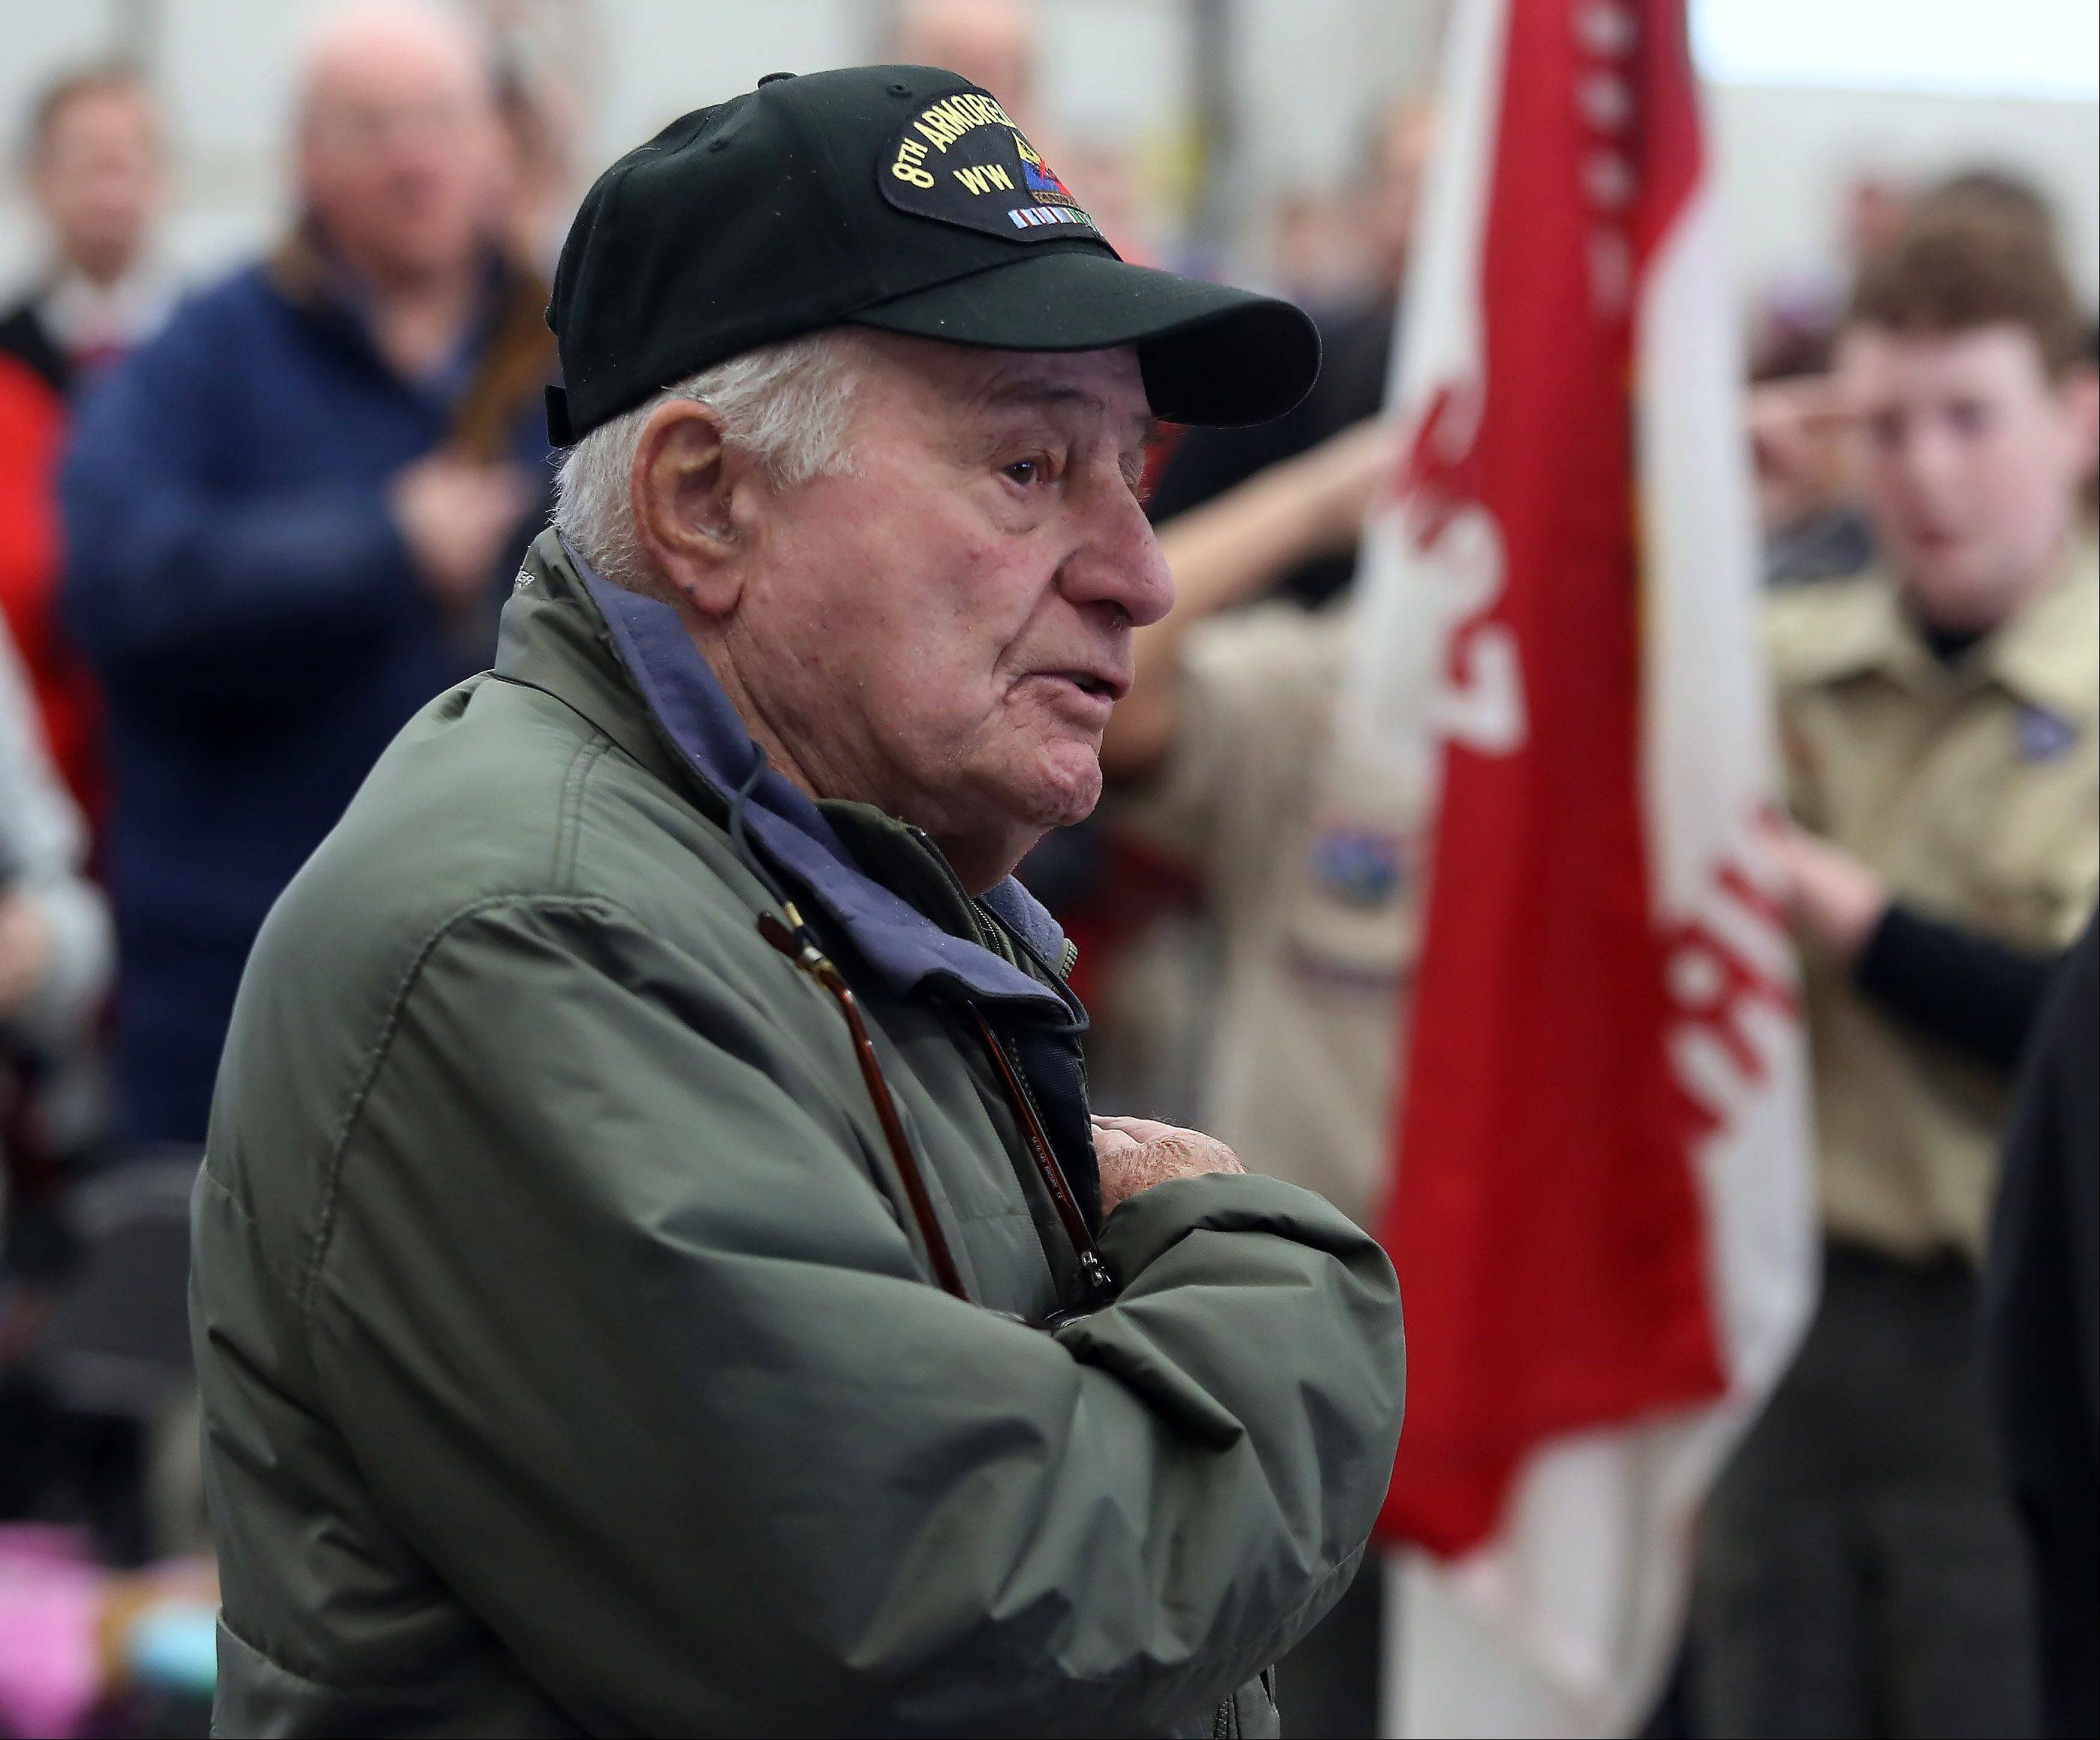 World War II veteran Morrie Dorfman of Lake Villa recites the Pledge of Allegiance during the Veterans Day ceremony Monday at the Lindenhurst Municipal Center and Veterans Memorial. The ceremony honored veterans and their families and featured several speakers, including Capt. R. Scott Laedlein, commanding officer of Navy Operational Support Command for Chicago.